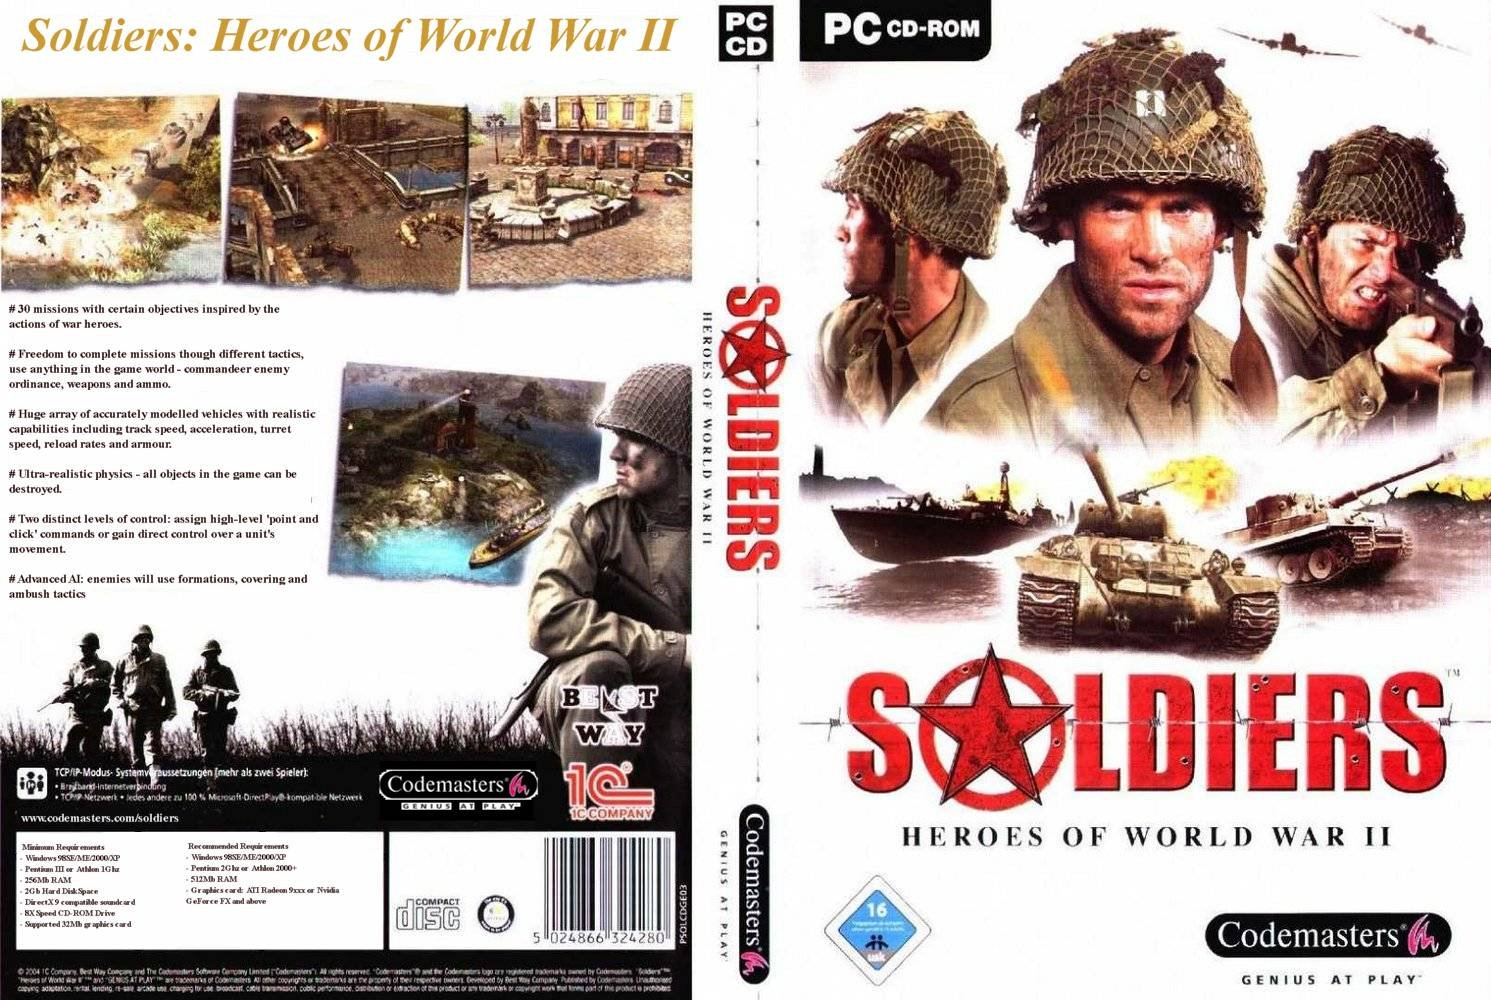 soldiers who are heroes Metacritic game reviews, soldiers: heroes of world war ii for pc, soldiers is a third-person tactical action game that plays out like a blockbuster war movie 30+ missions, more than 100 vehicles, 25+ we.